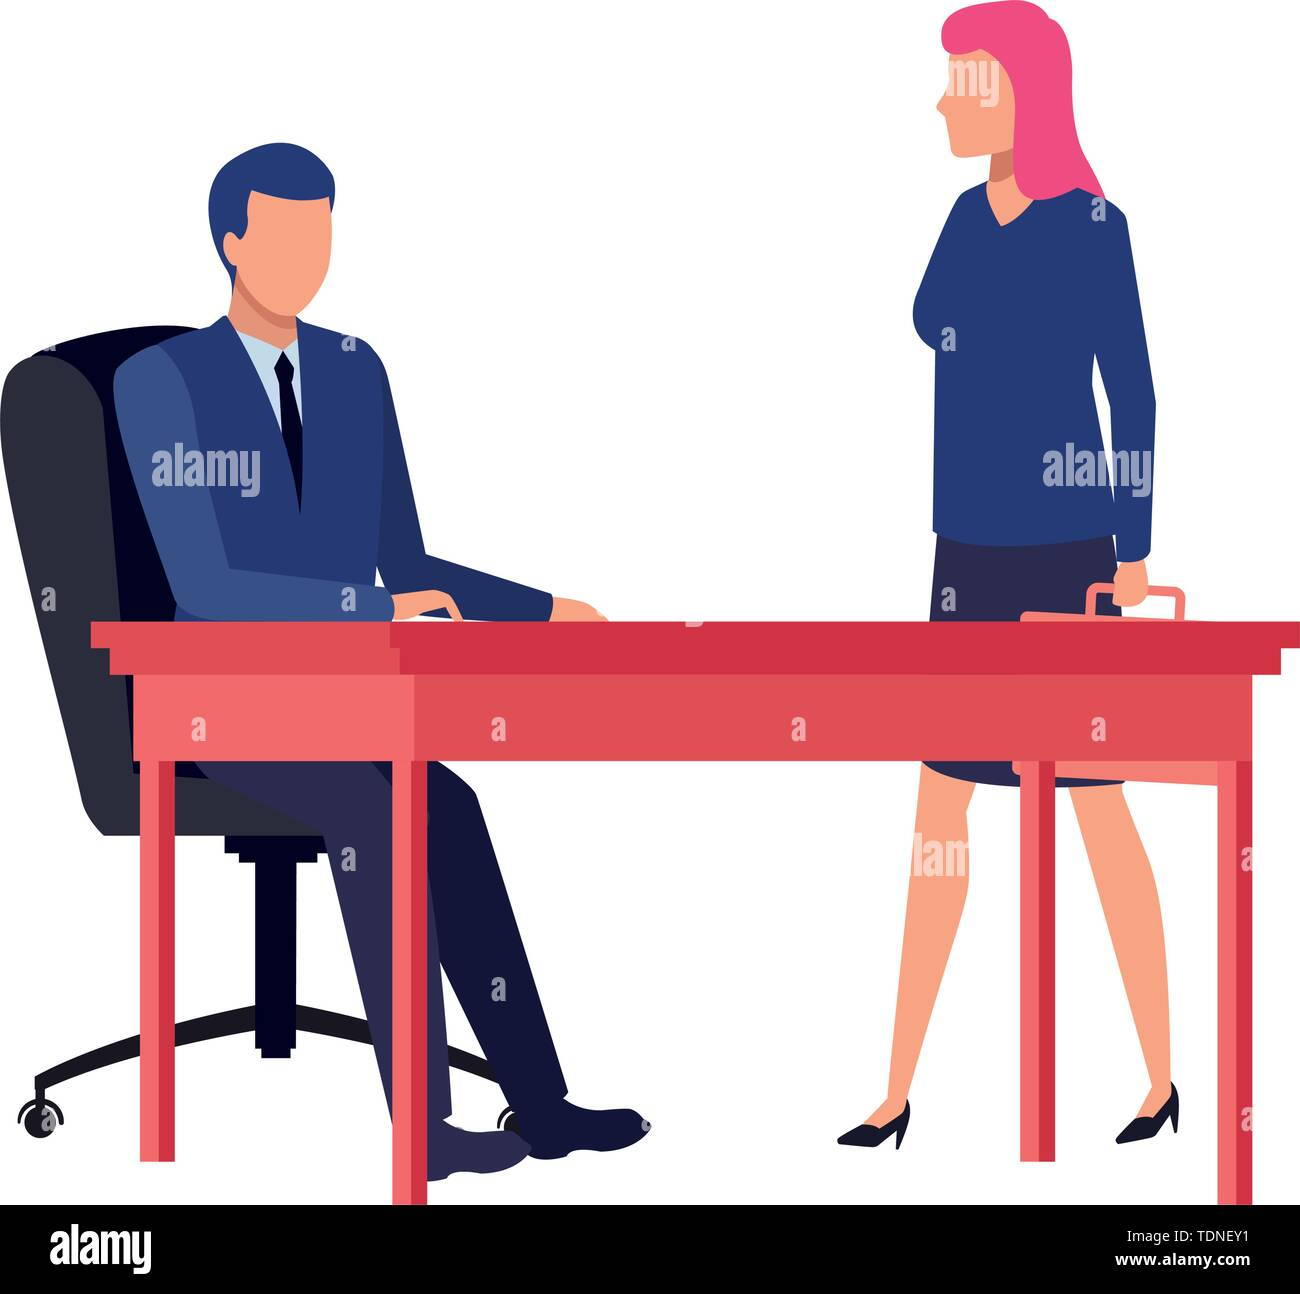 business business people businessman sitting on a desk and businesswoman carrying a briefcase avatar cartoon character vector illustration graphic des - Stock Image